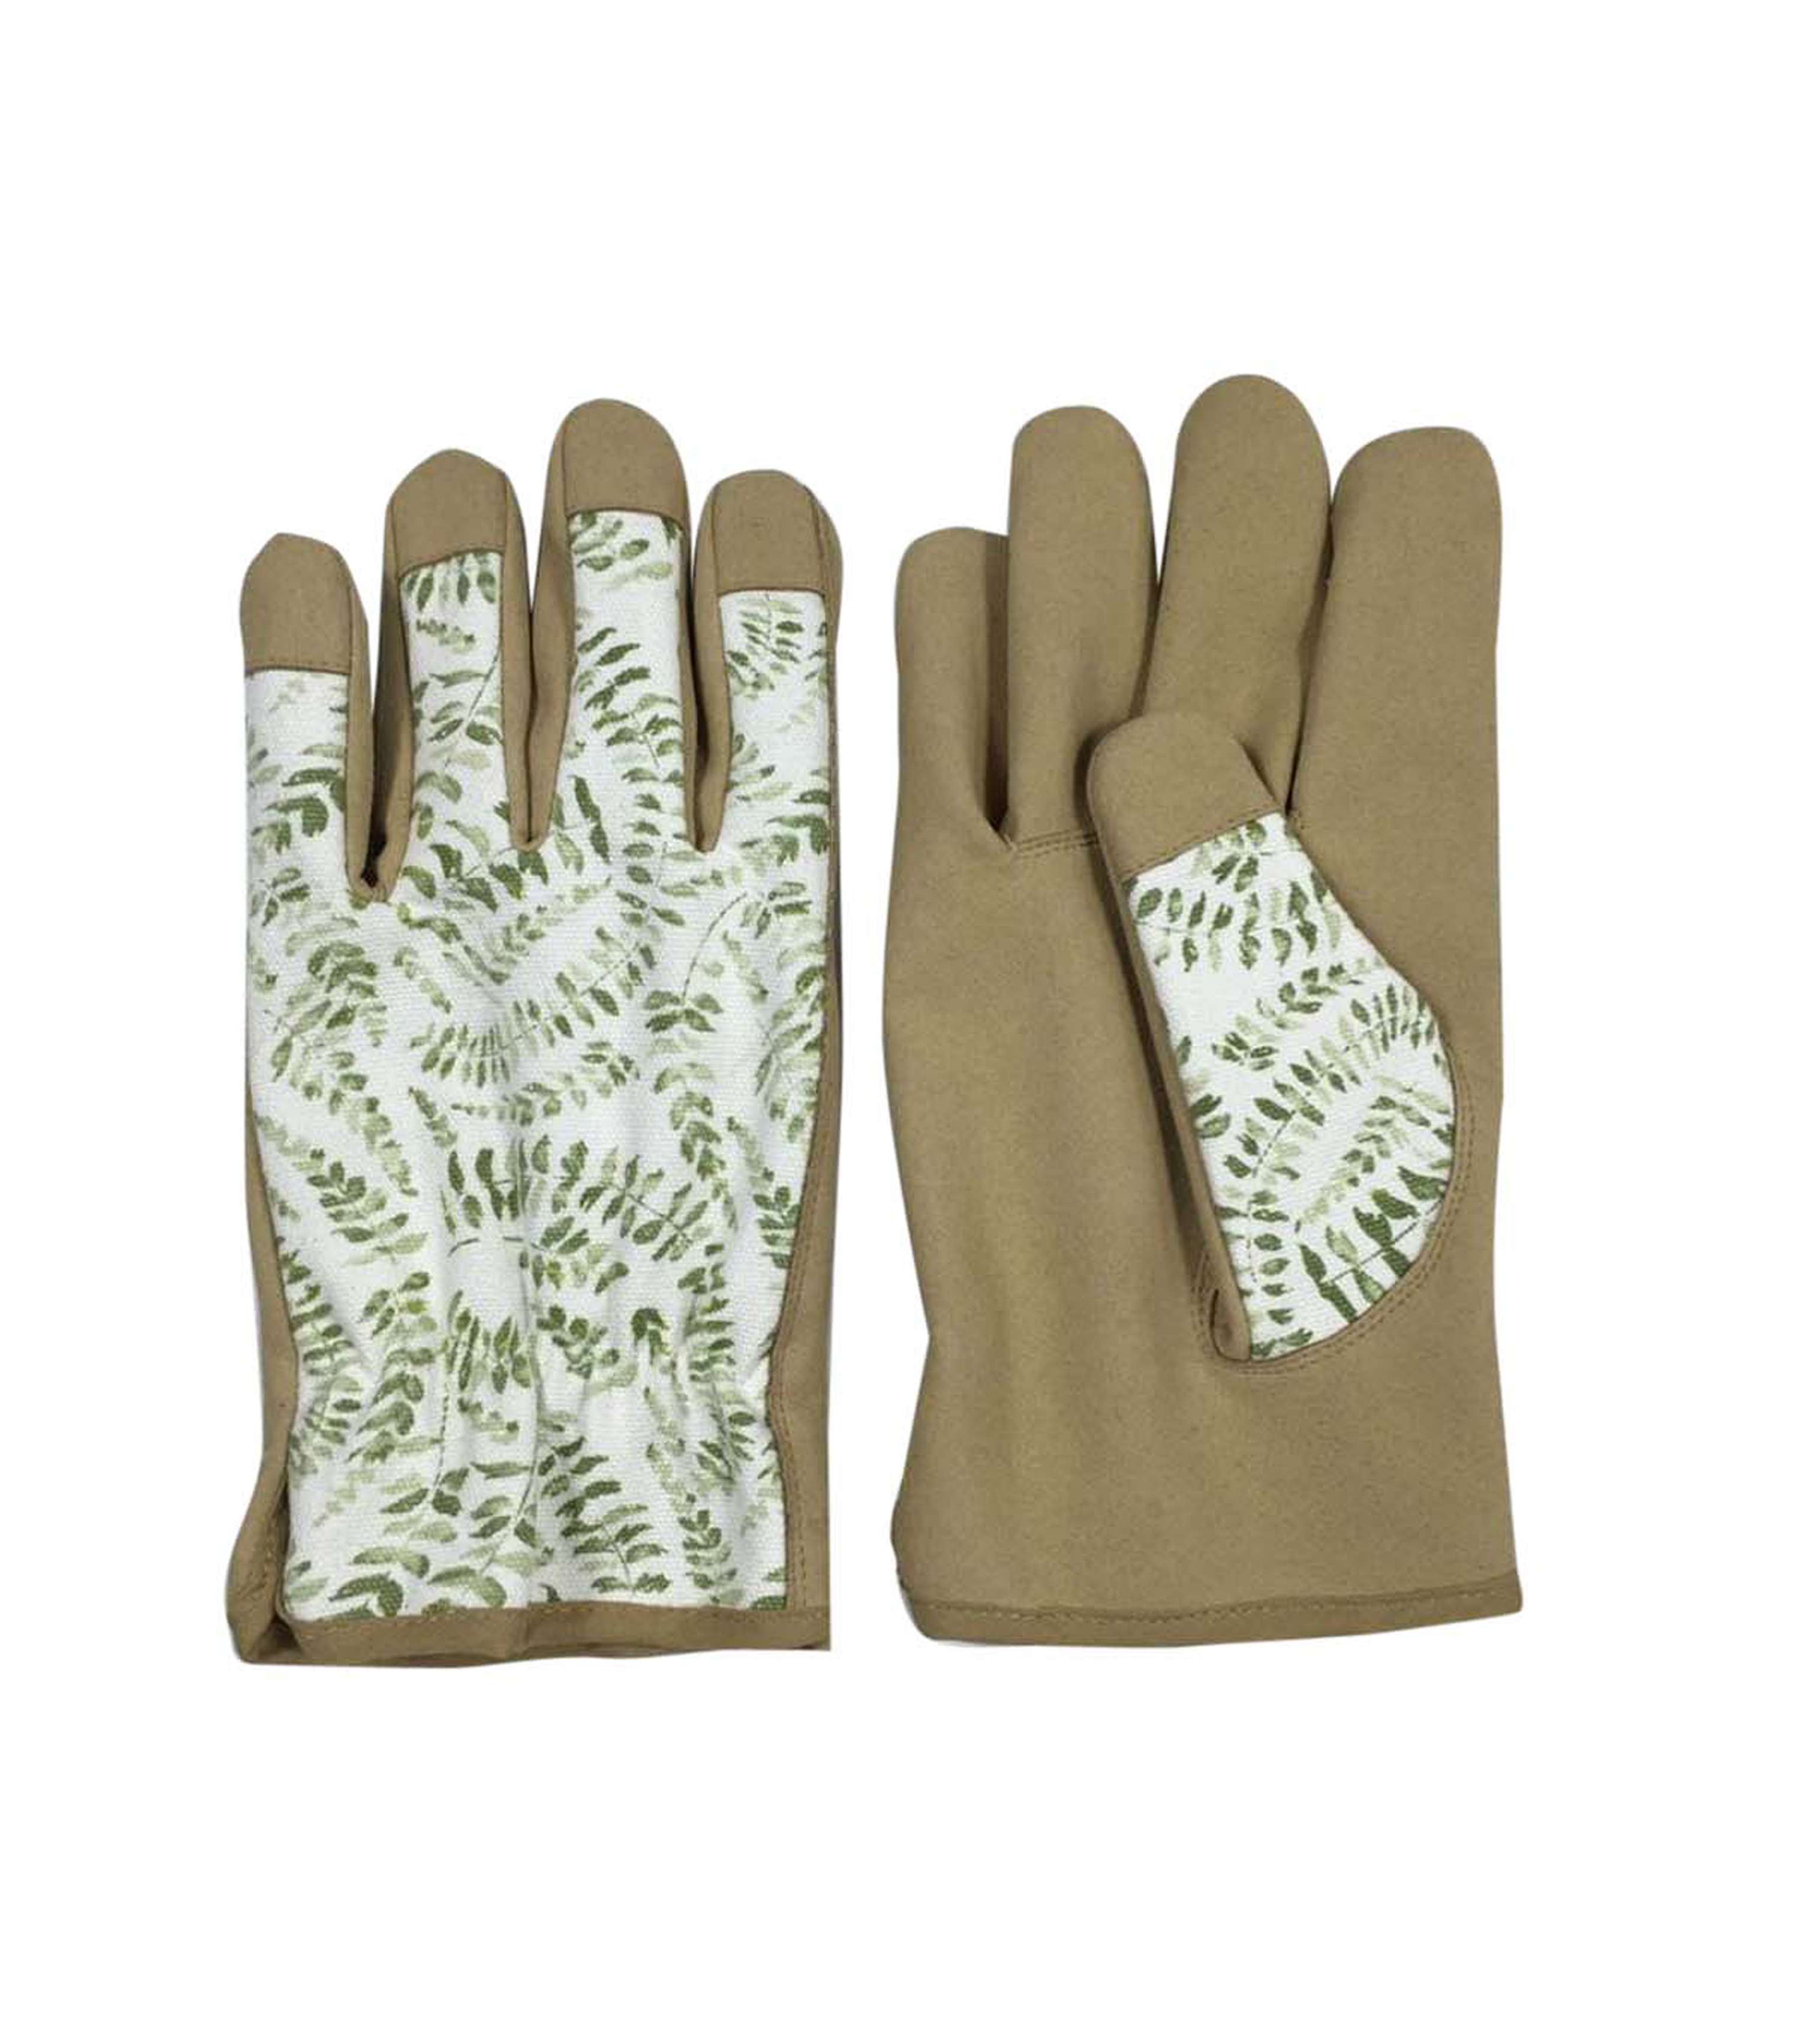 Wild Blooms Ladies Gardening Gloves